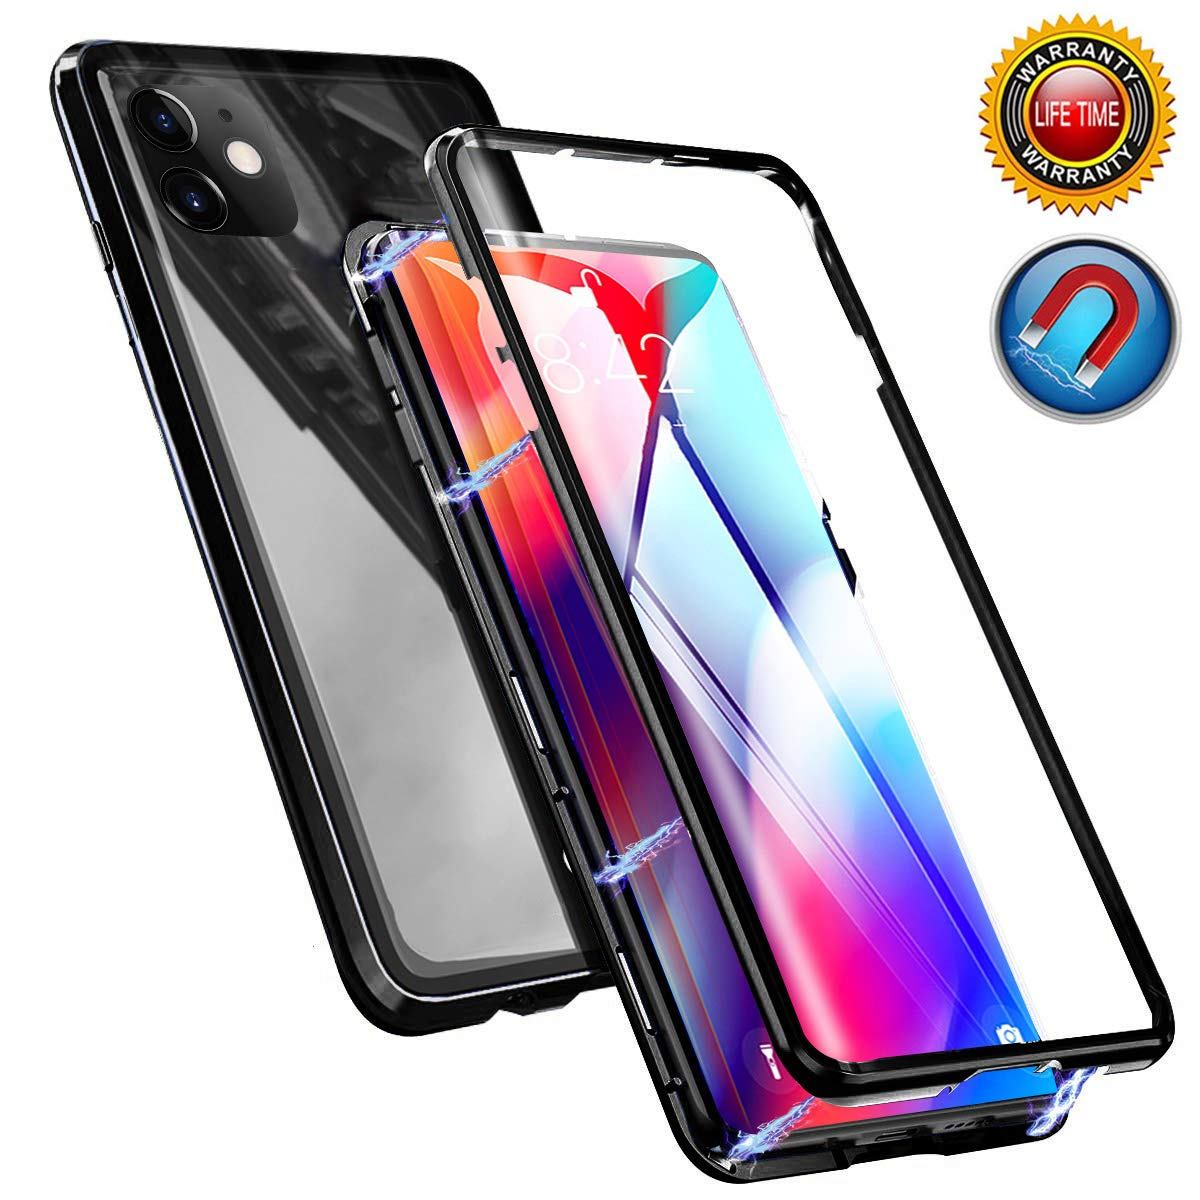 Magnetic Adsorption Case for iPhone 11 Pro Max, Magnetic Case Front and Back Tempered Glass Magnet Cover, Full Body Protective Case with Metal Bumper Frame for iPhone 11 Pro Max 6.5 Inch 2019 (Black)